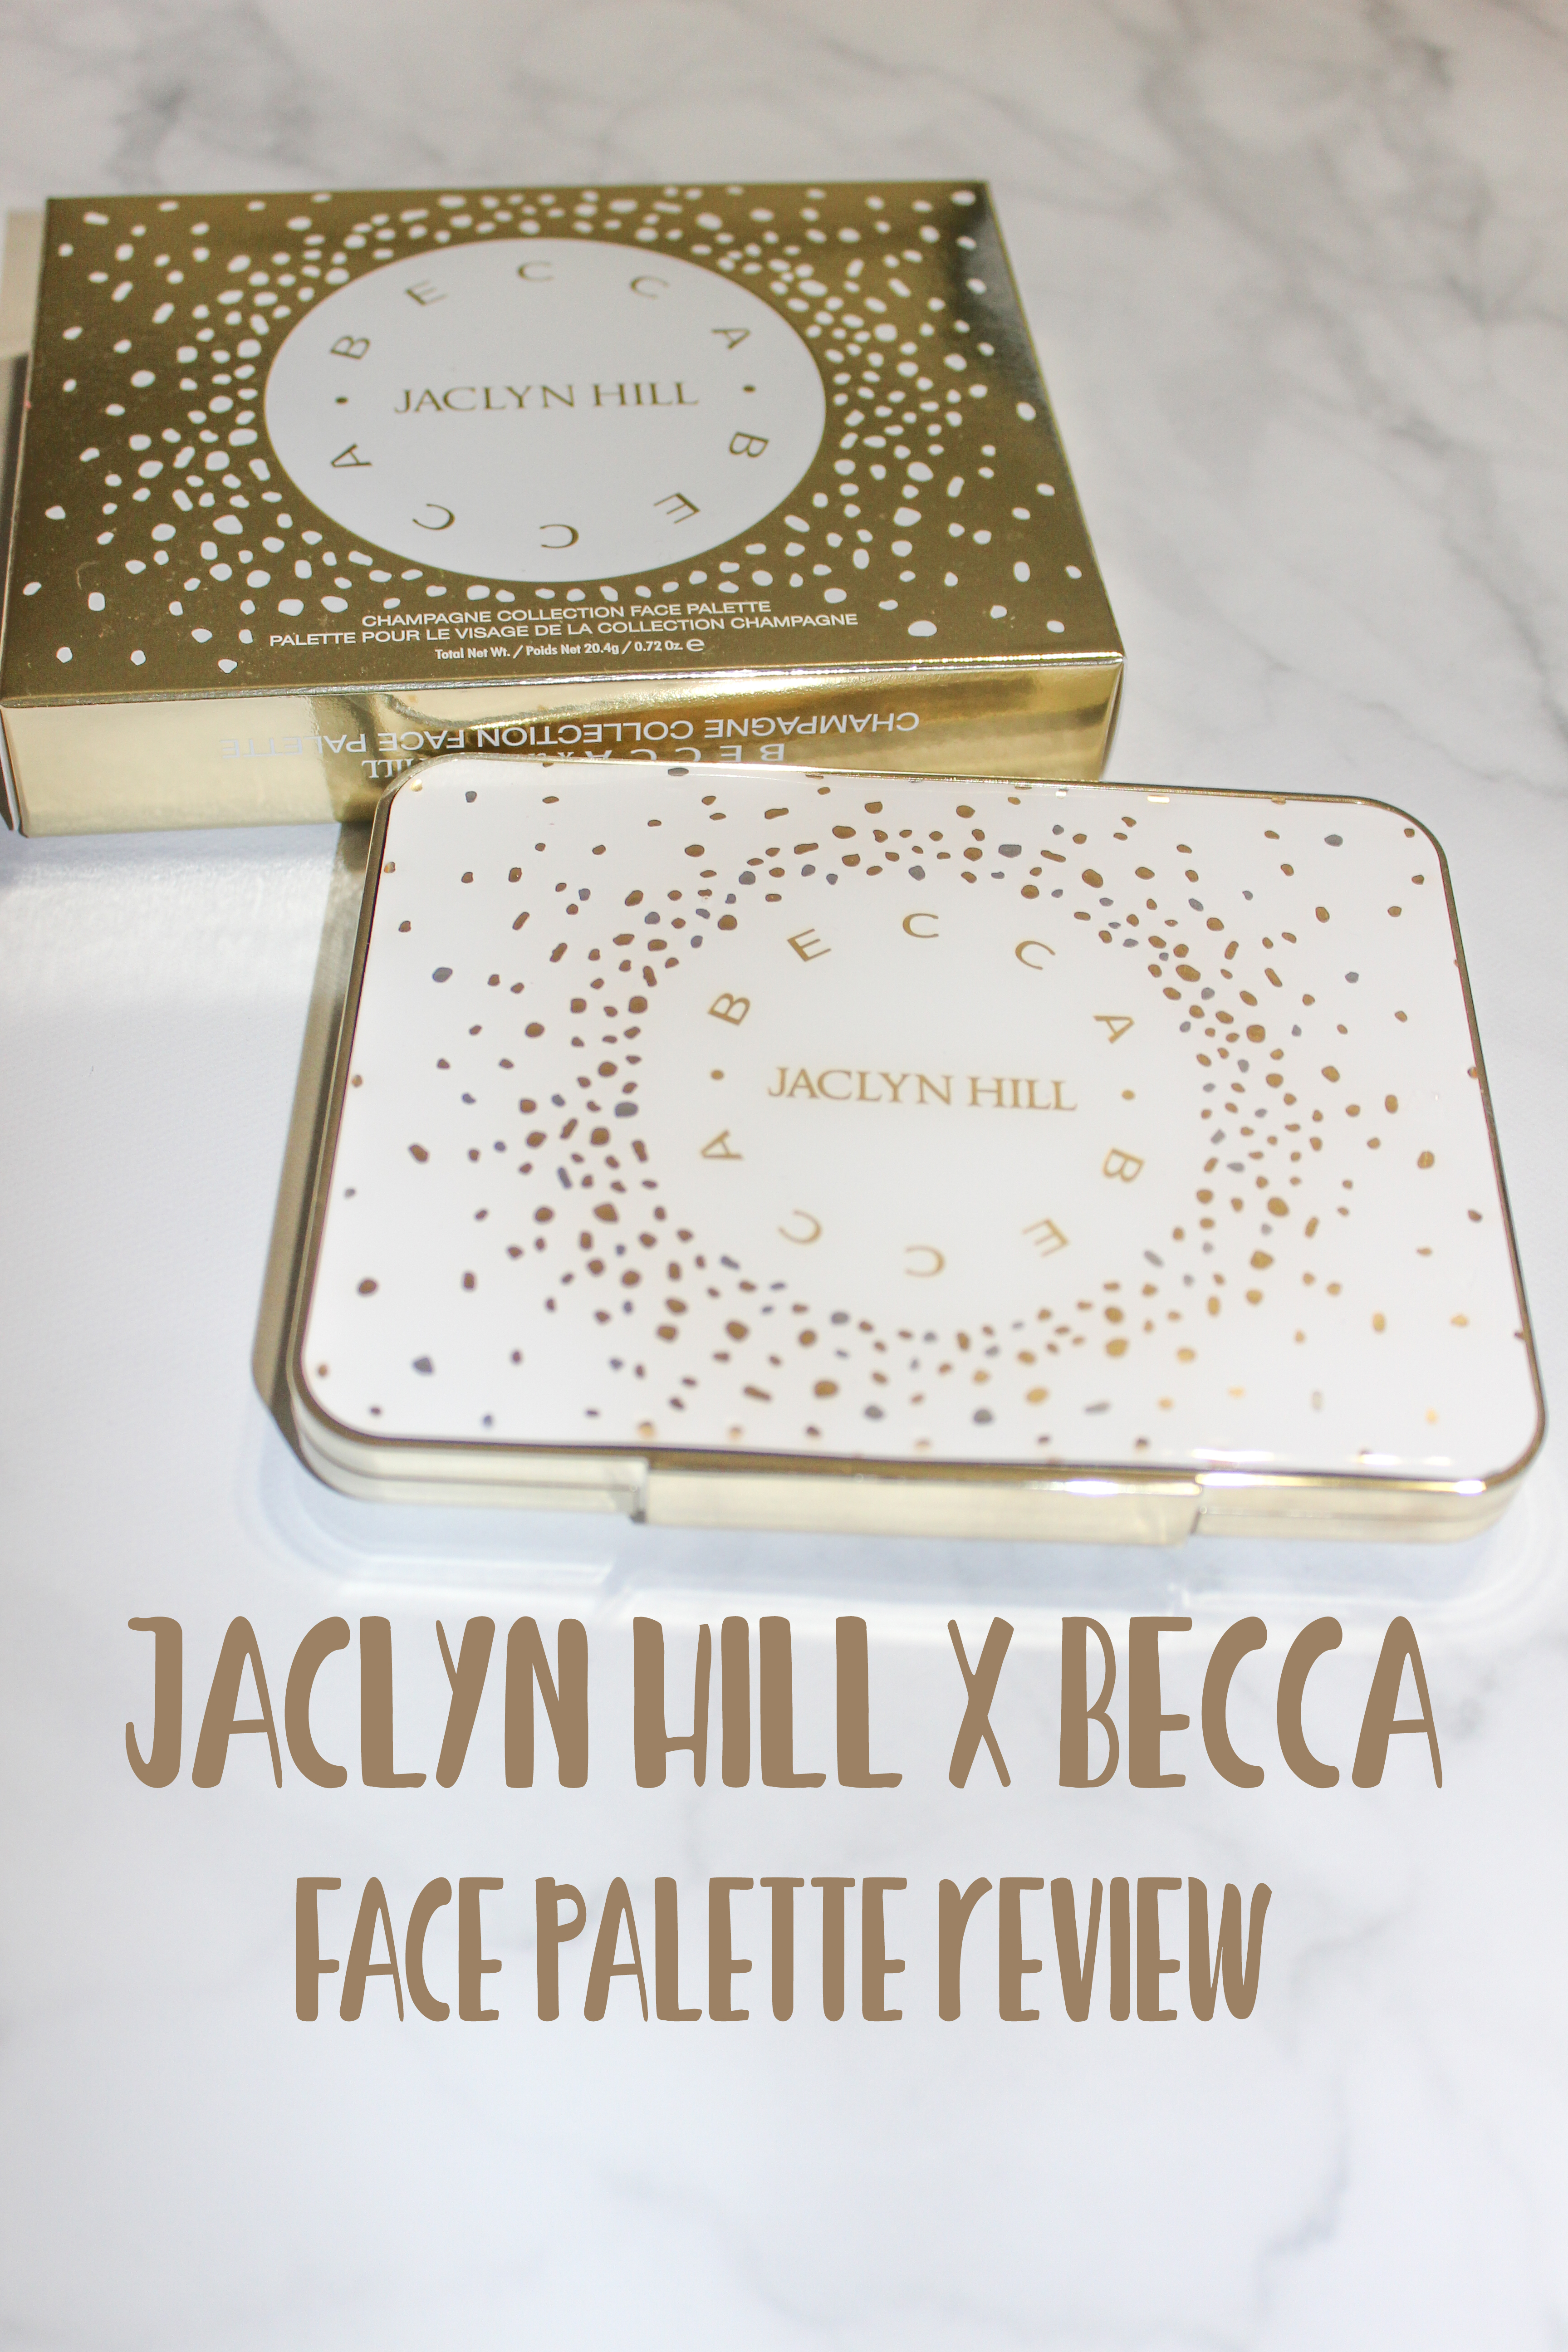 Becca x Jaclyn Hill Champagne Collection Face Palette Review!